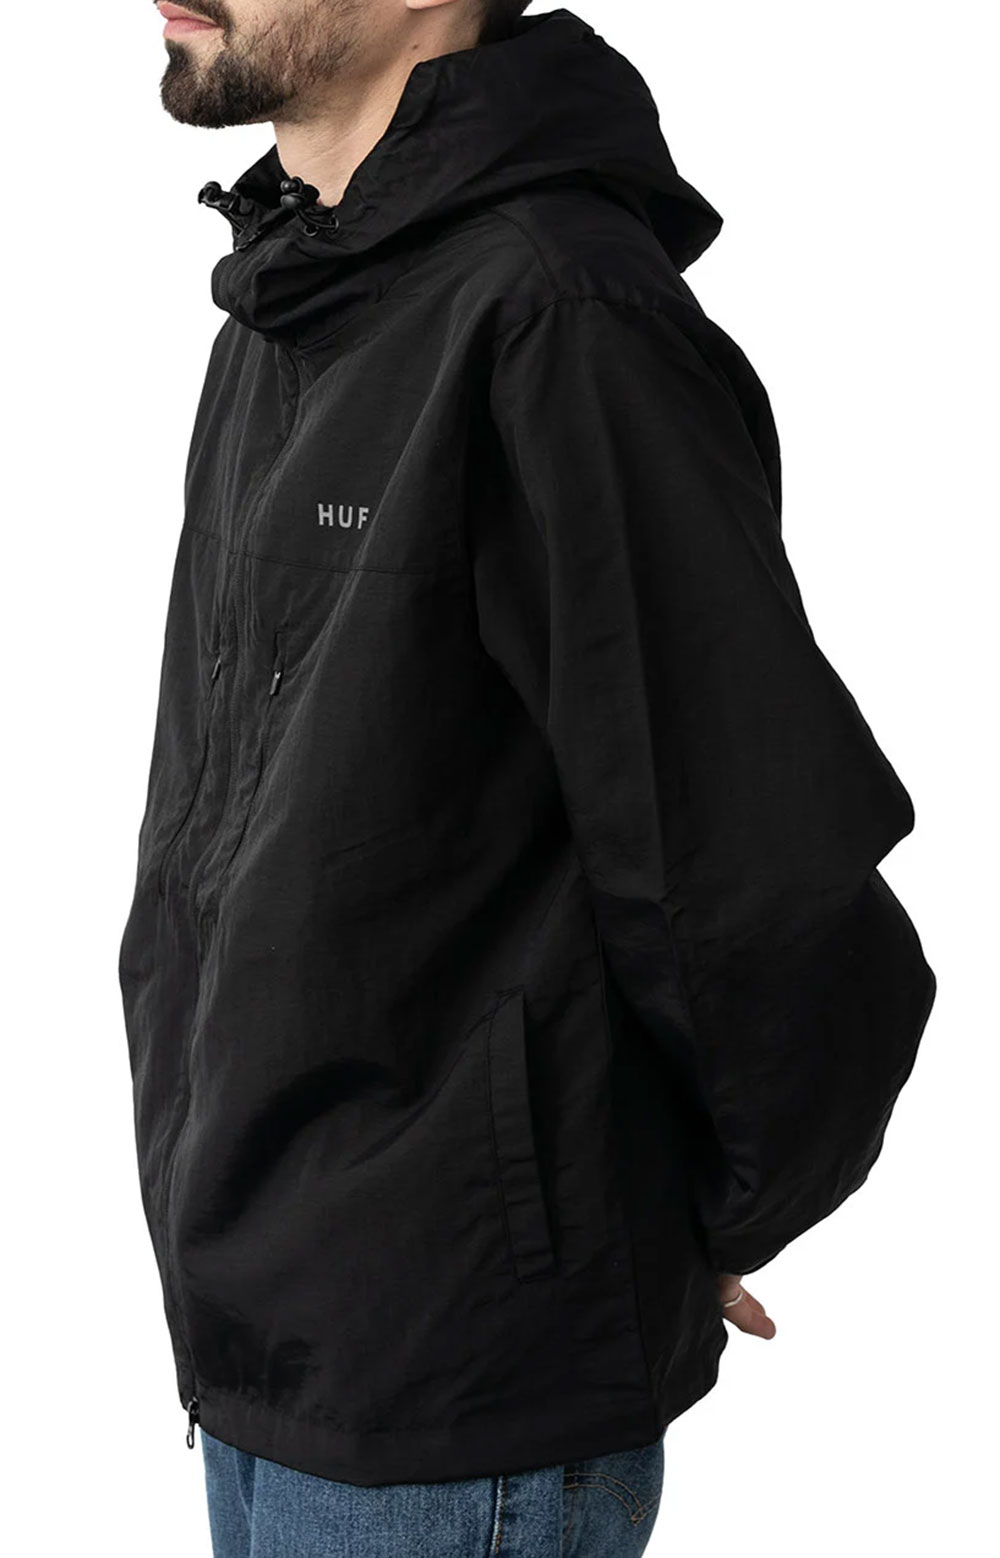 Essentials Zip Standard Shell Jacket - Black 2